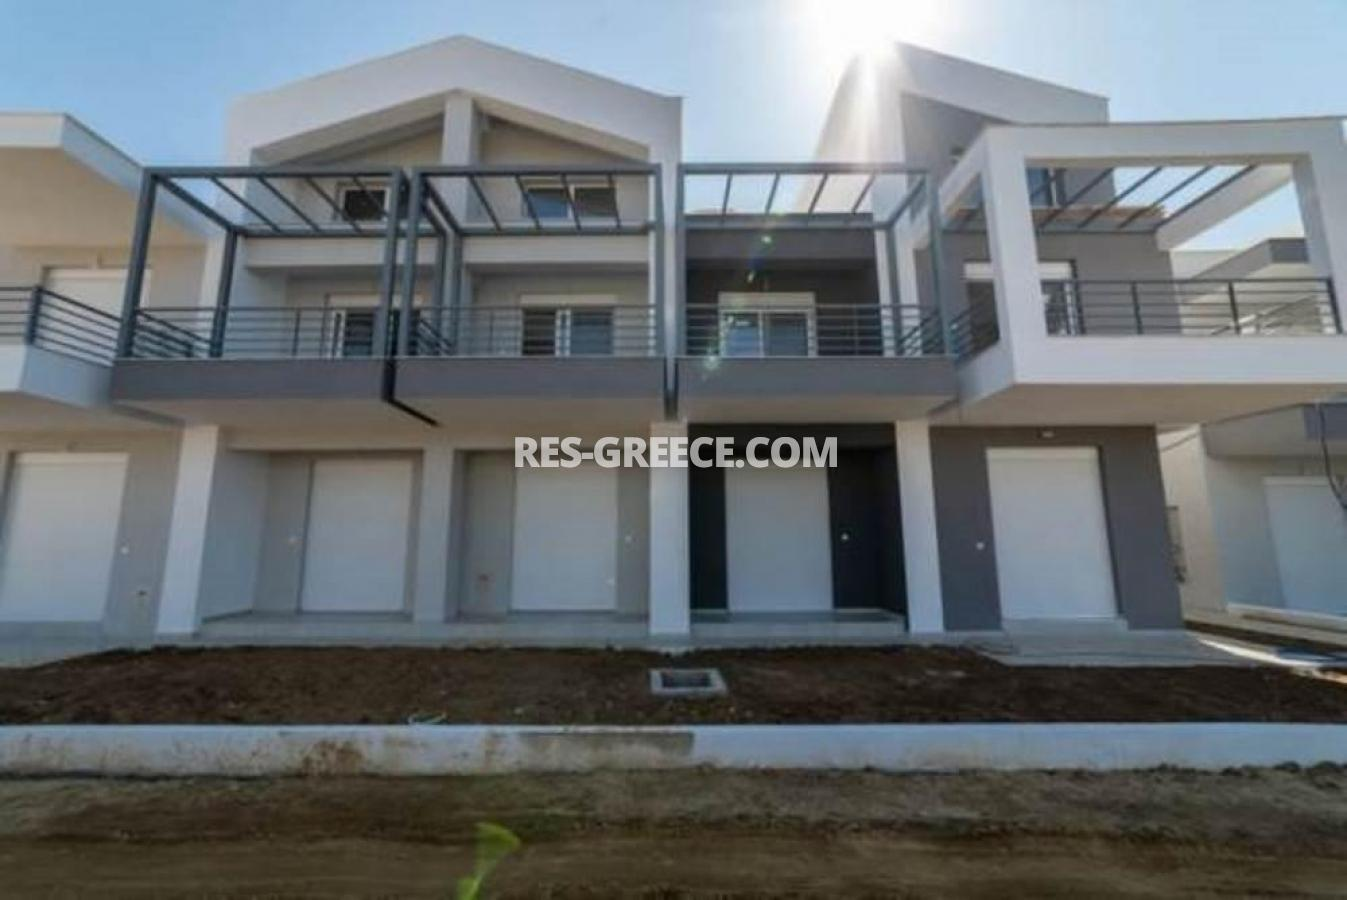 Nefeli aparts, Eastern Macedonia and Thraki, Greece - complex of apartments and studios for vacation rent - Photo 11